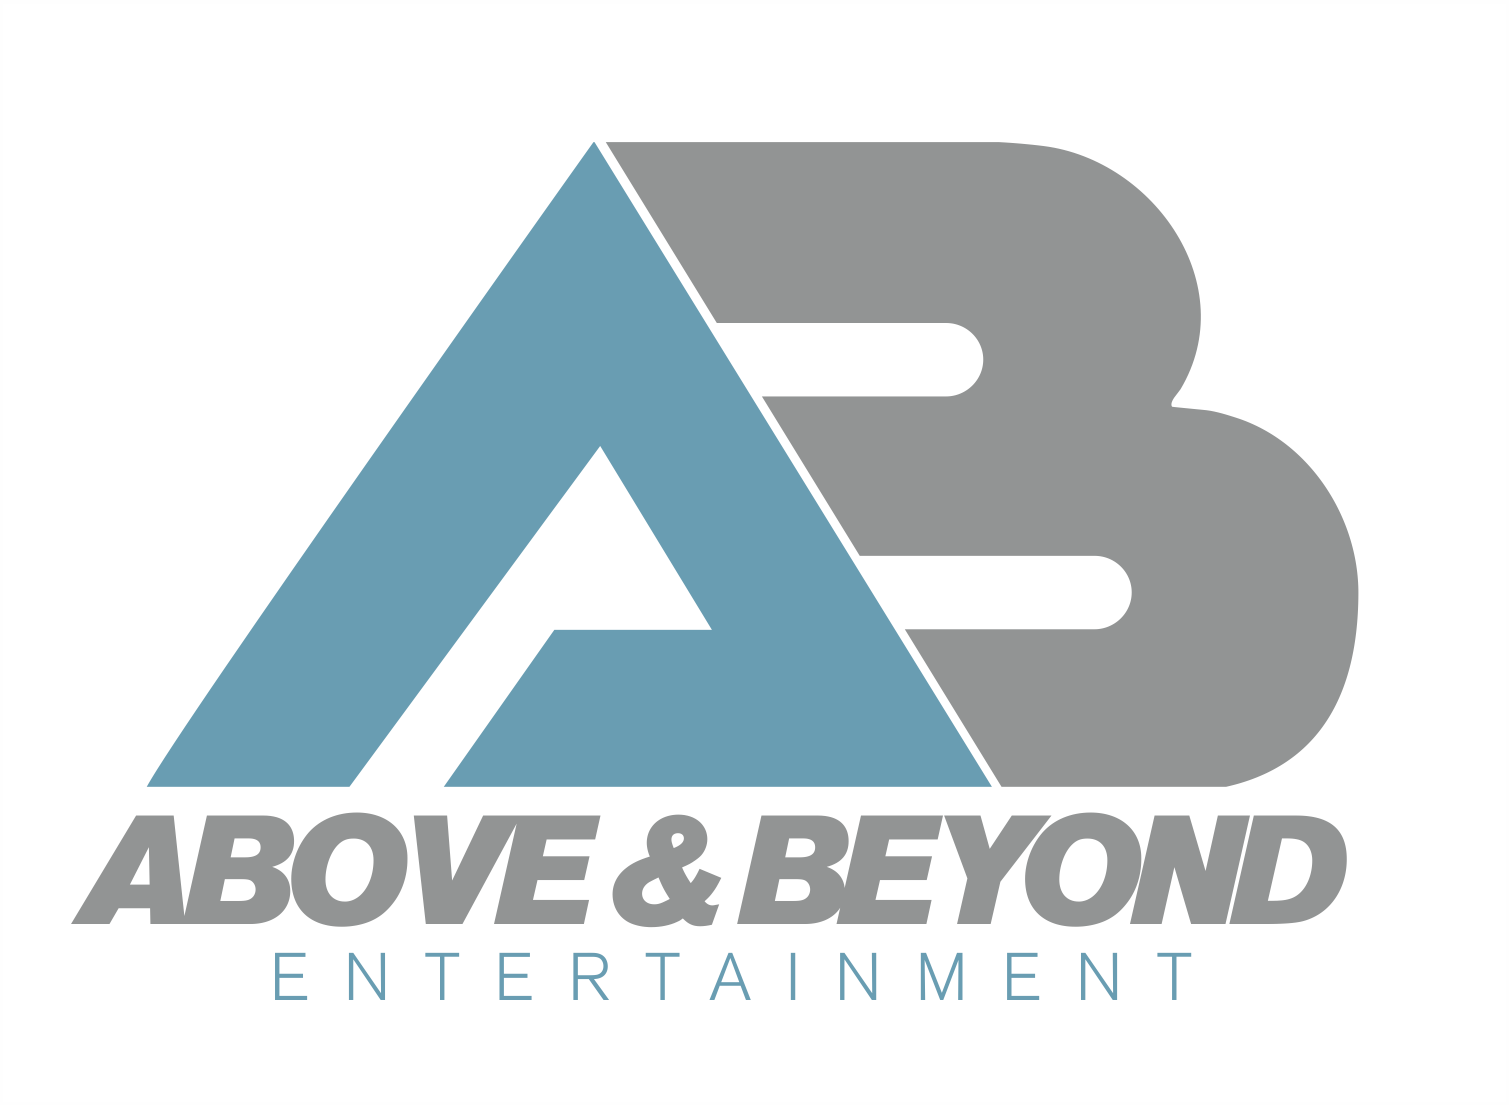 Above & Beyond Entertainment